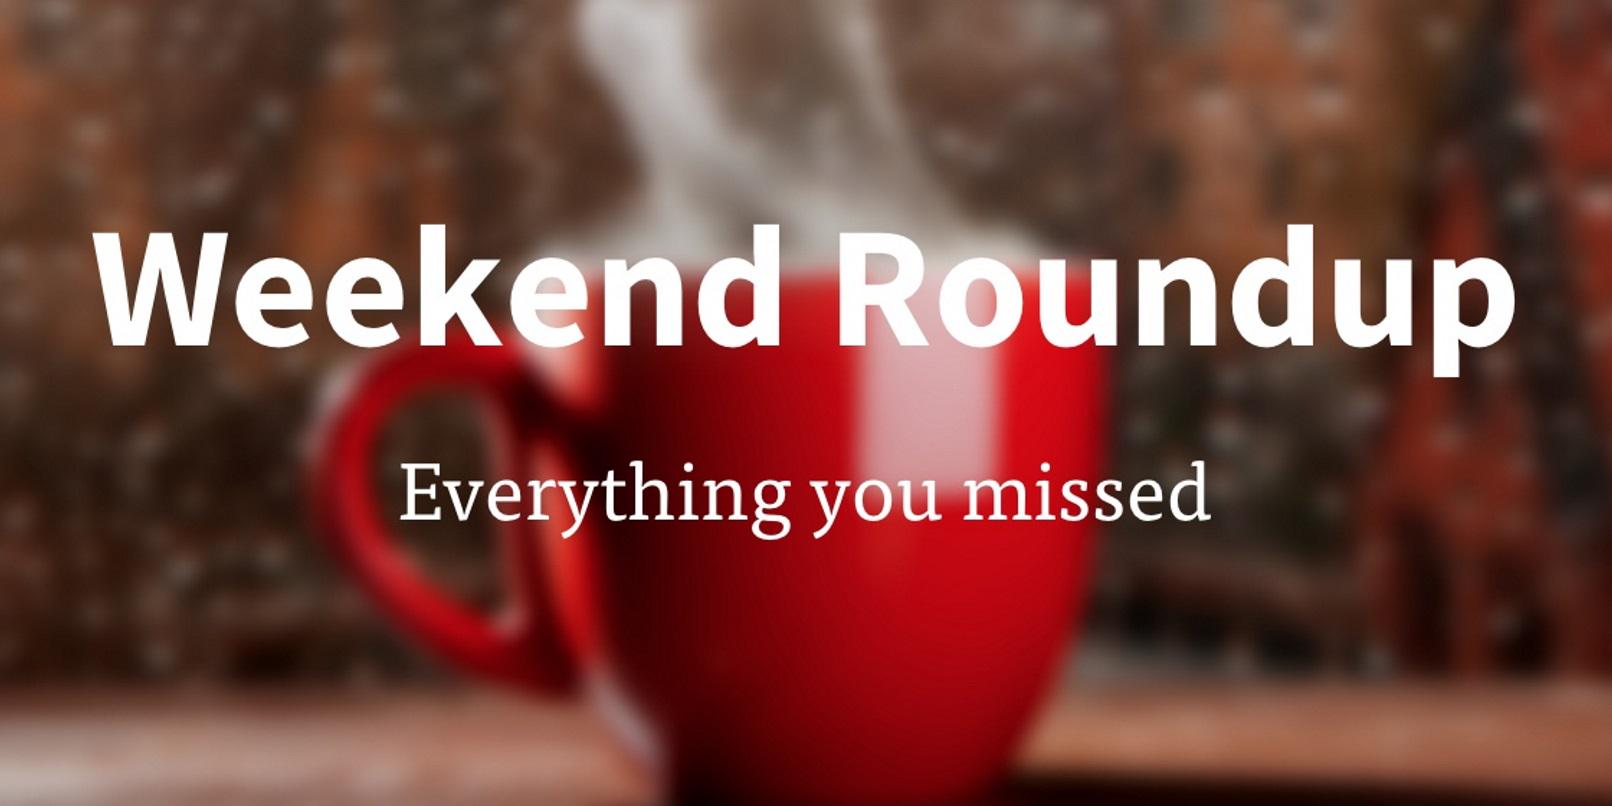 RT @TheNextWeb: Offline over the weekend? Read all the tech news you missed right here http://t.co/I2j7BnJEU1 http://t.co/UW8nXeVNmy